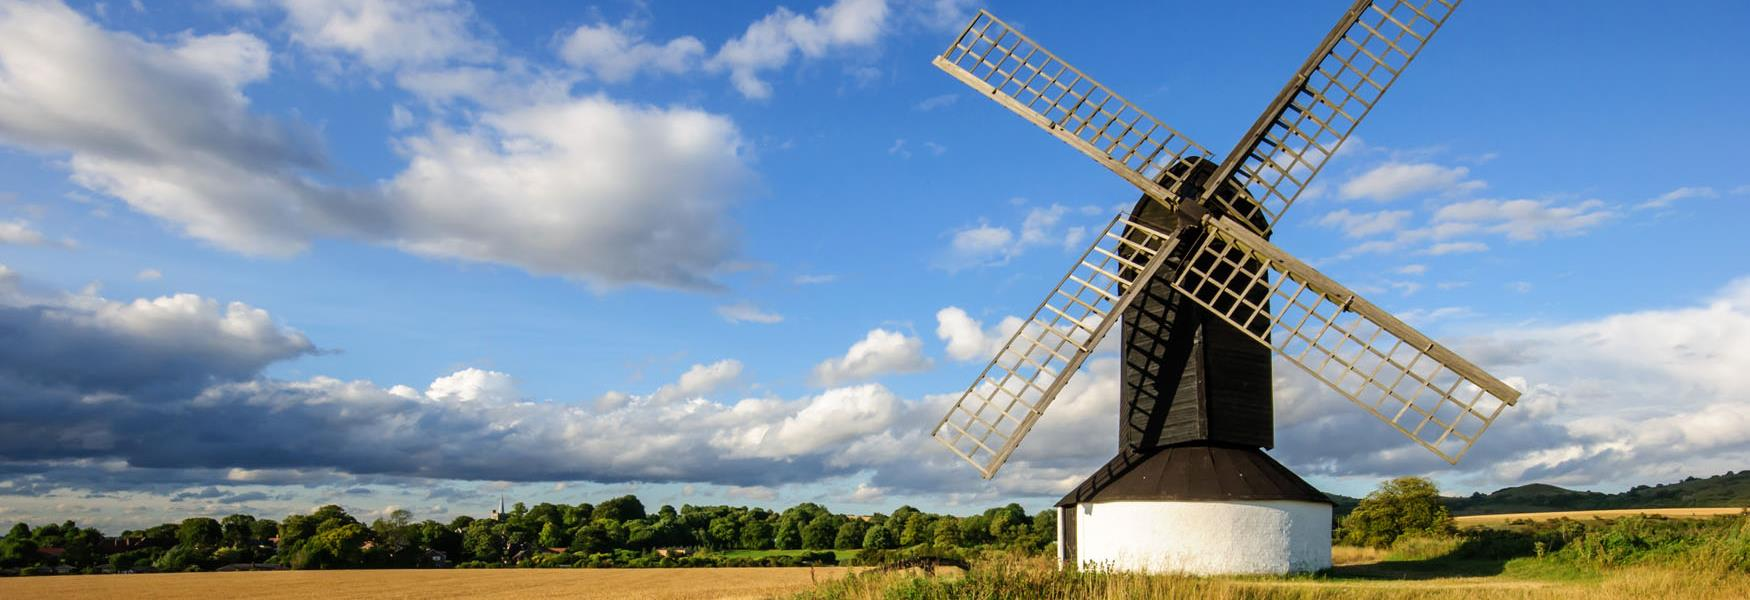 windmill at Pitstone, Bedfordshire